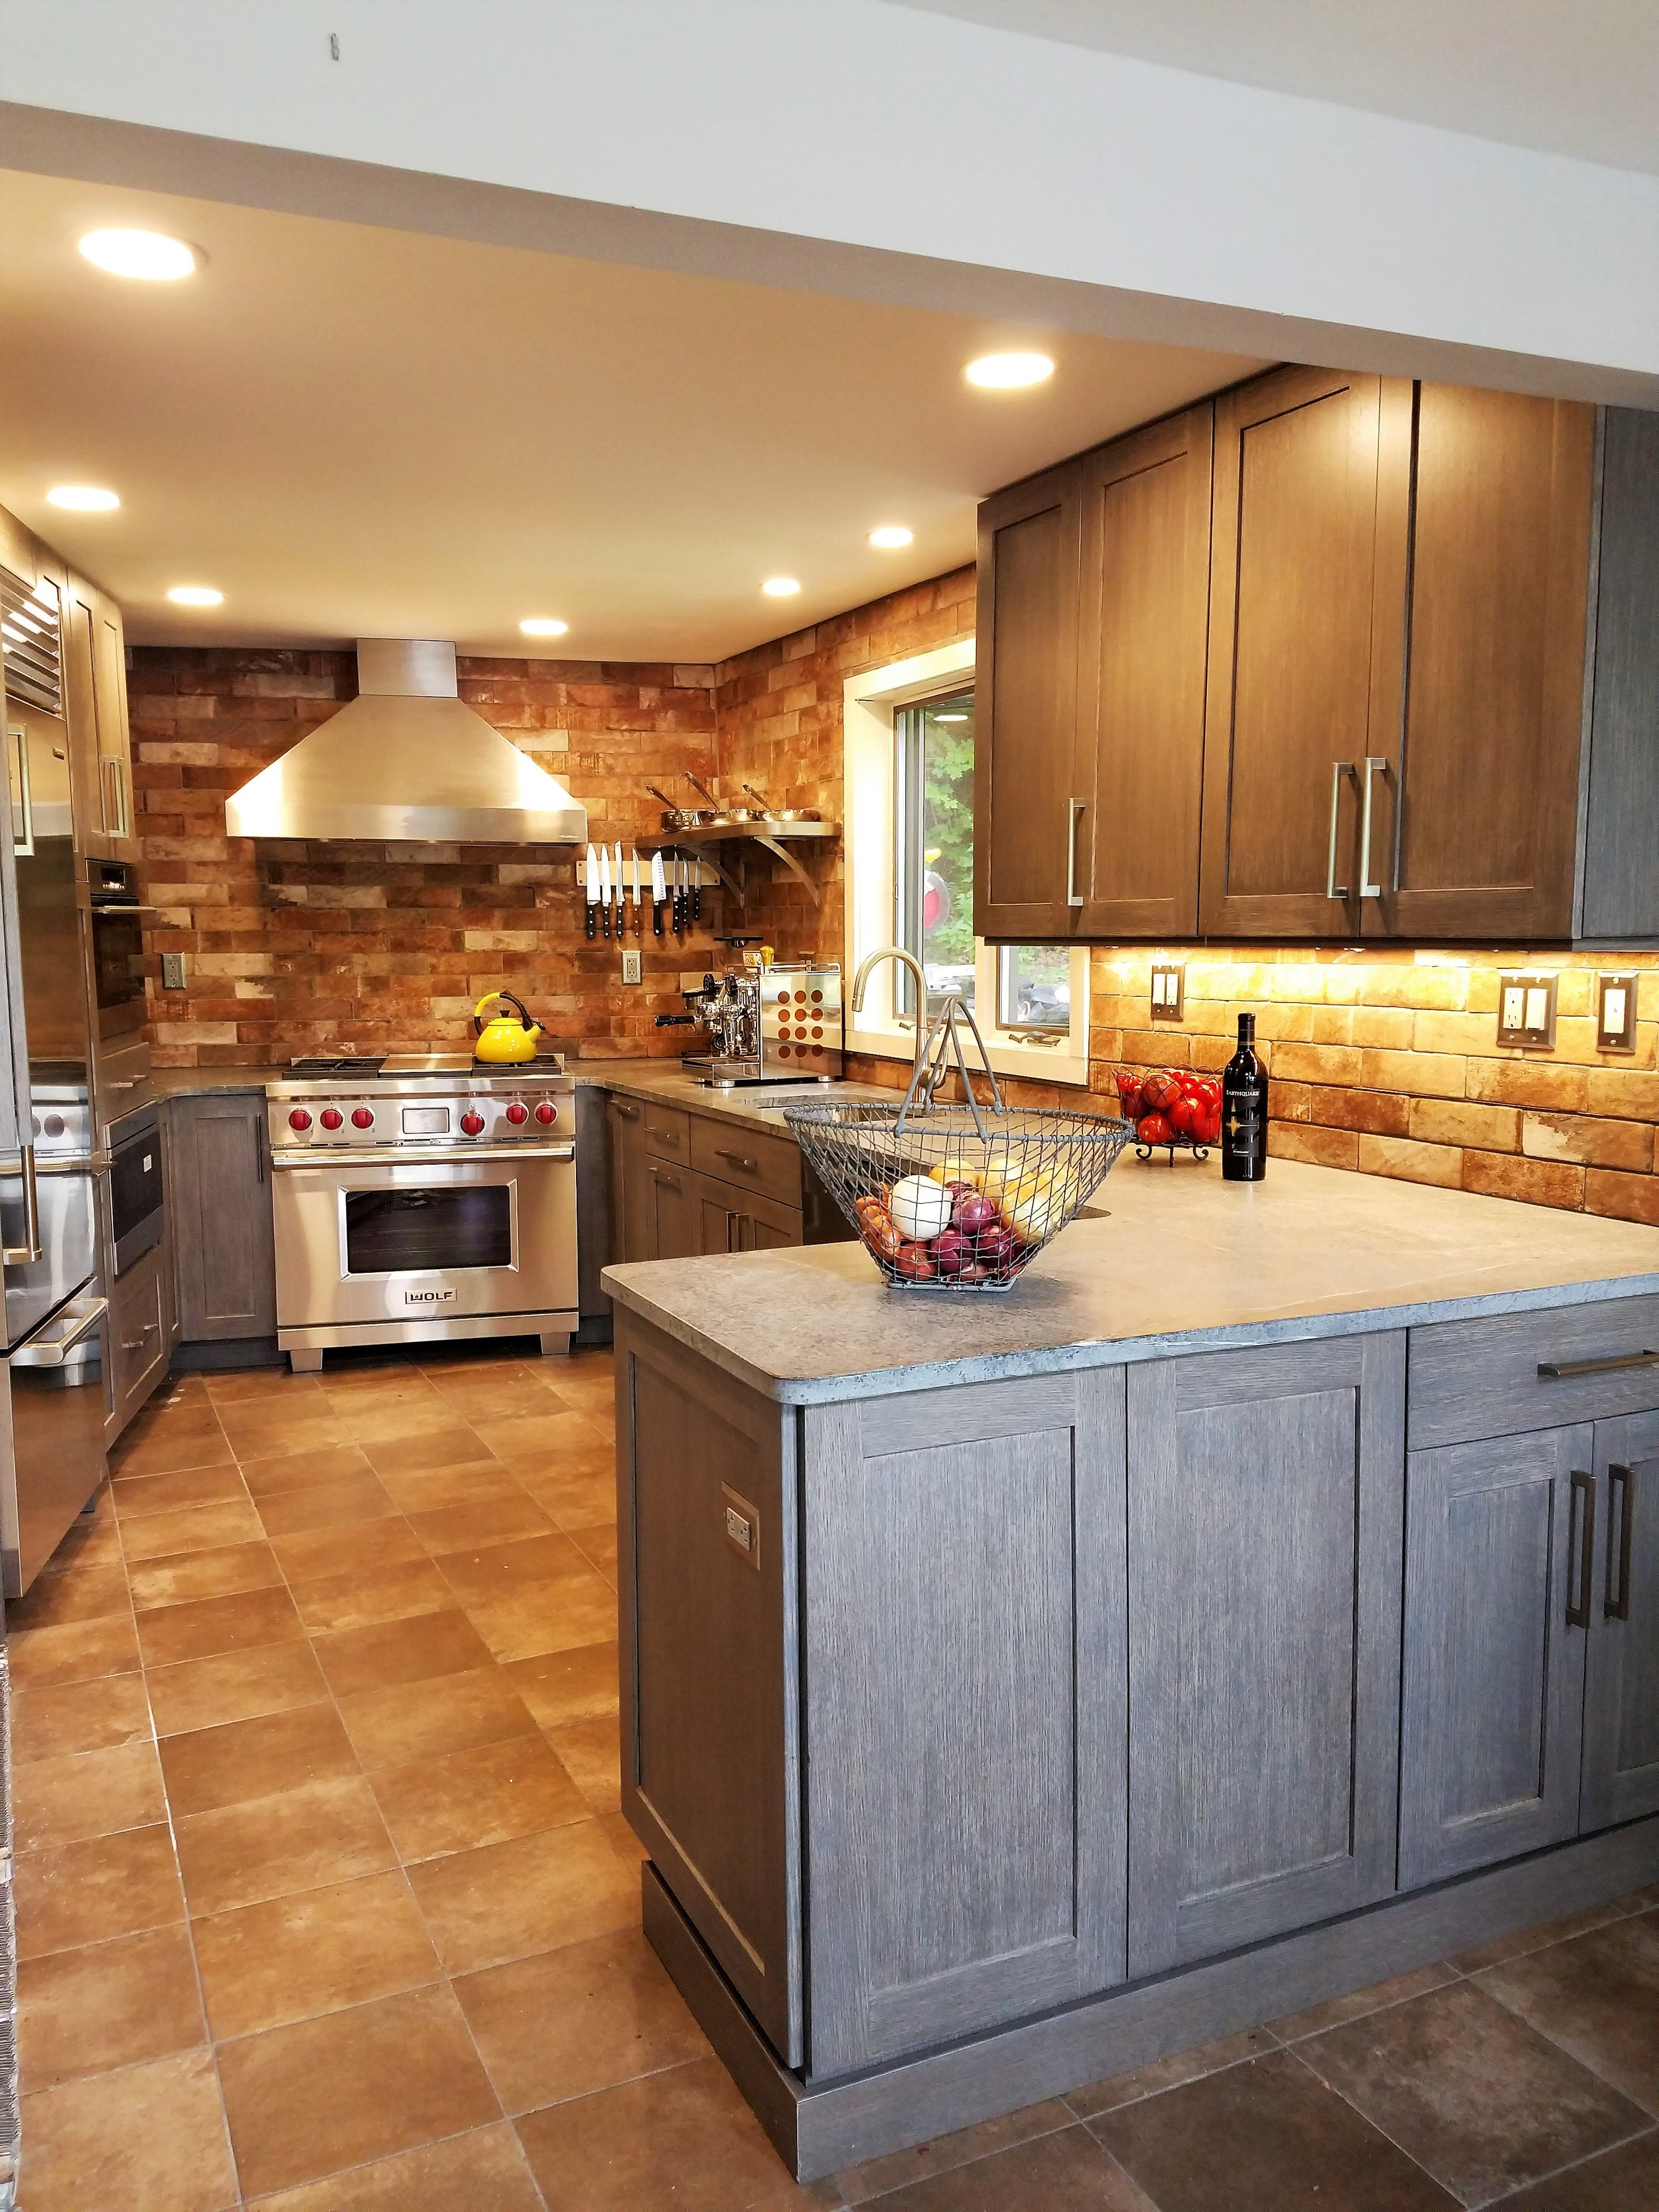 Contemporary Rustic Kitchen in Grey and Brown - I found Arthur Zobel on Houzz. It was the best